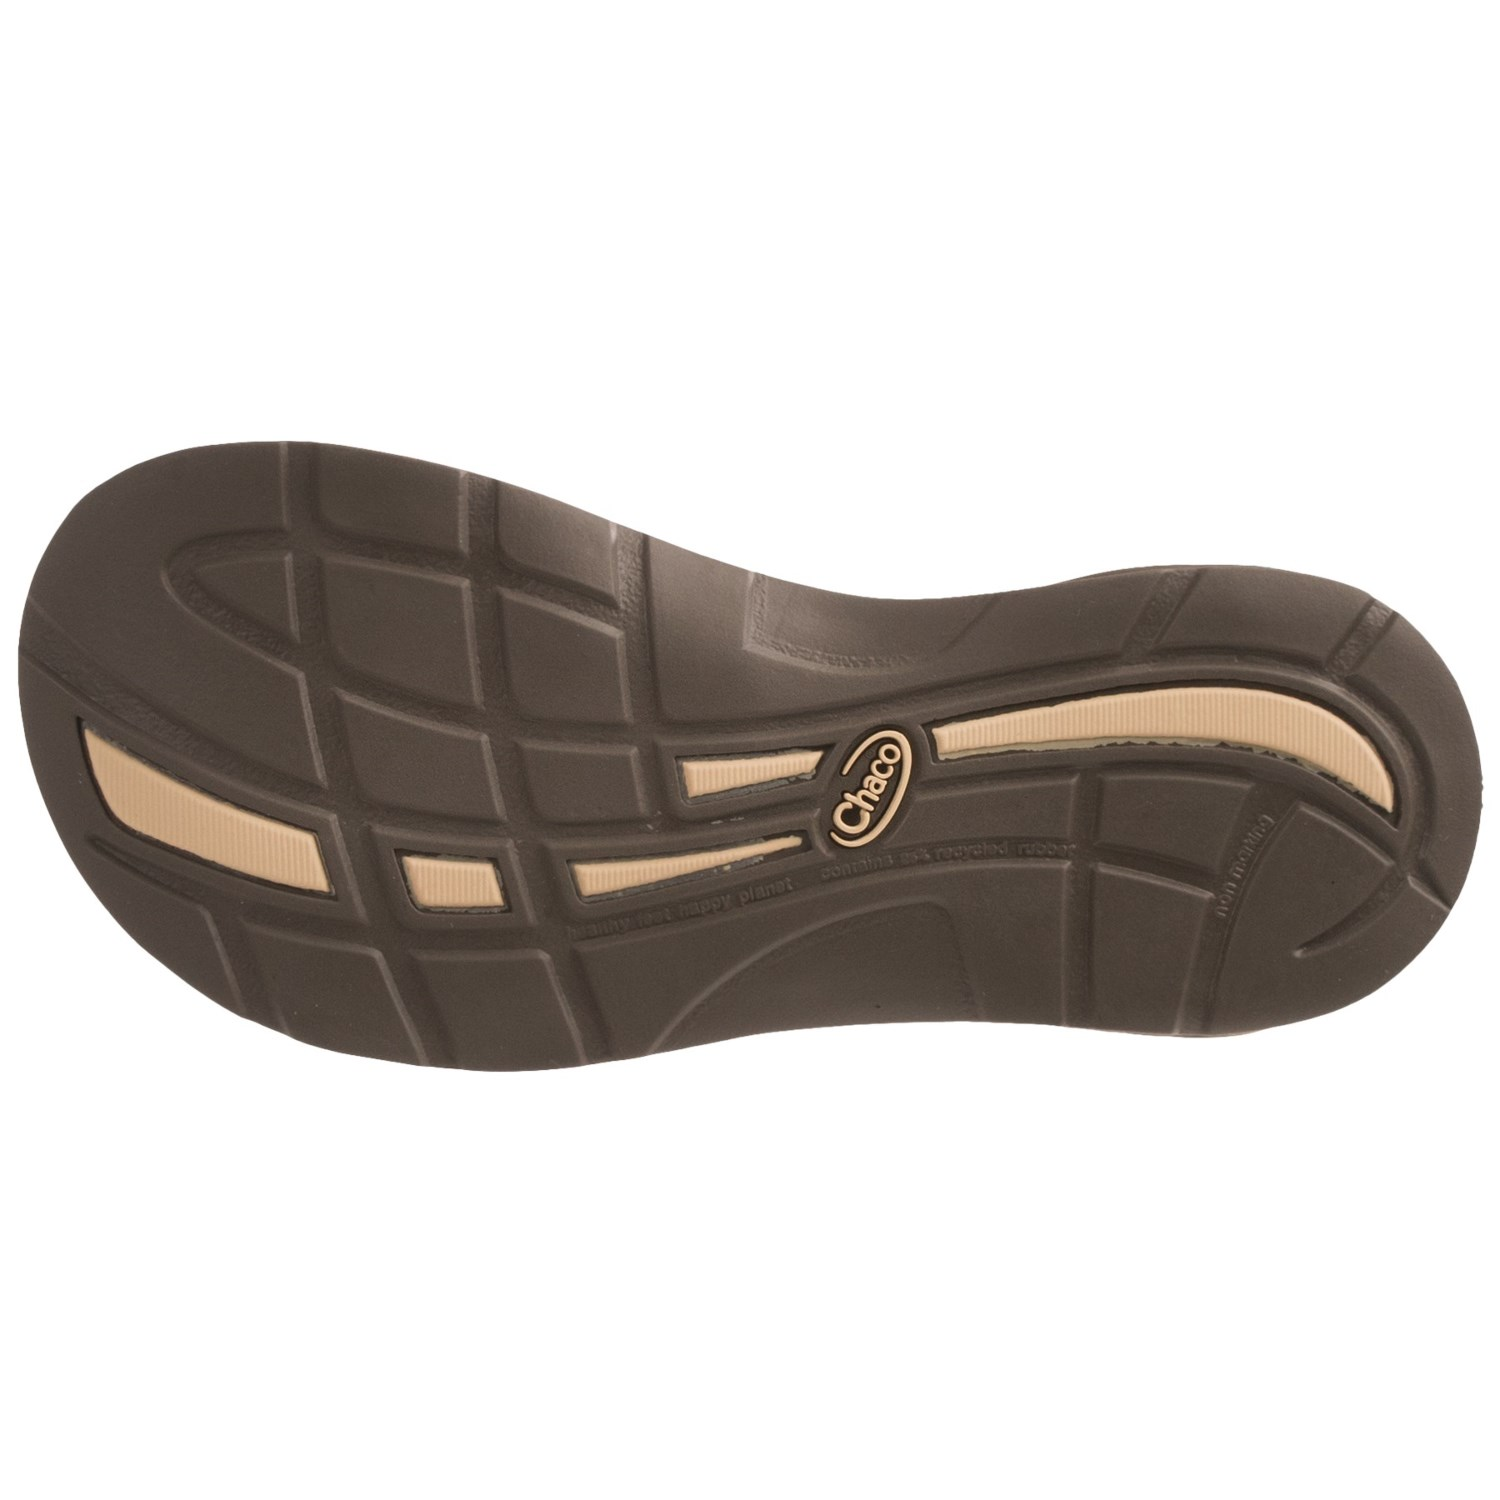 Fantastic Chaco Stowe Sandals For Women 6509X  Save 45